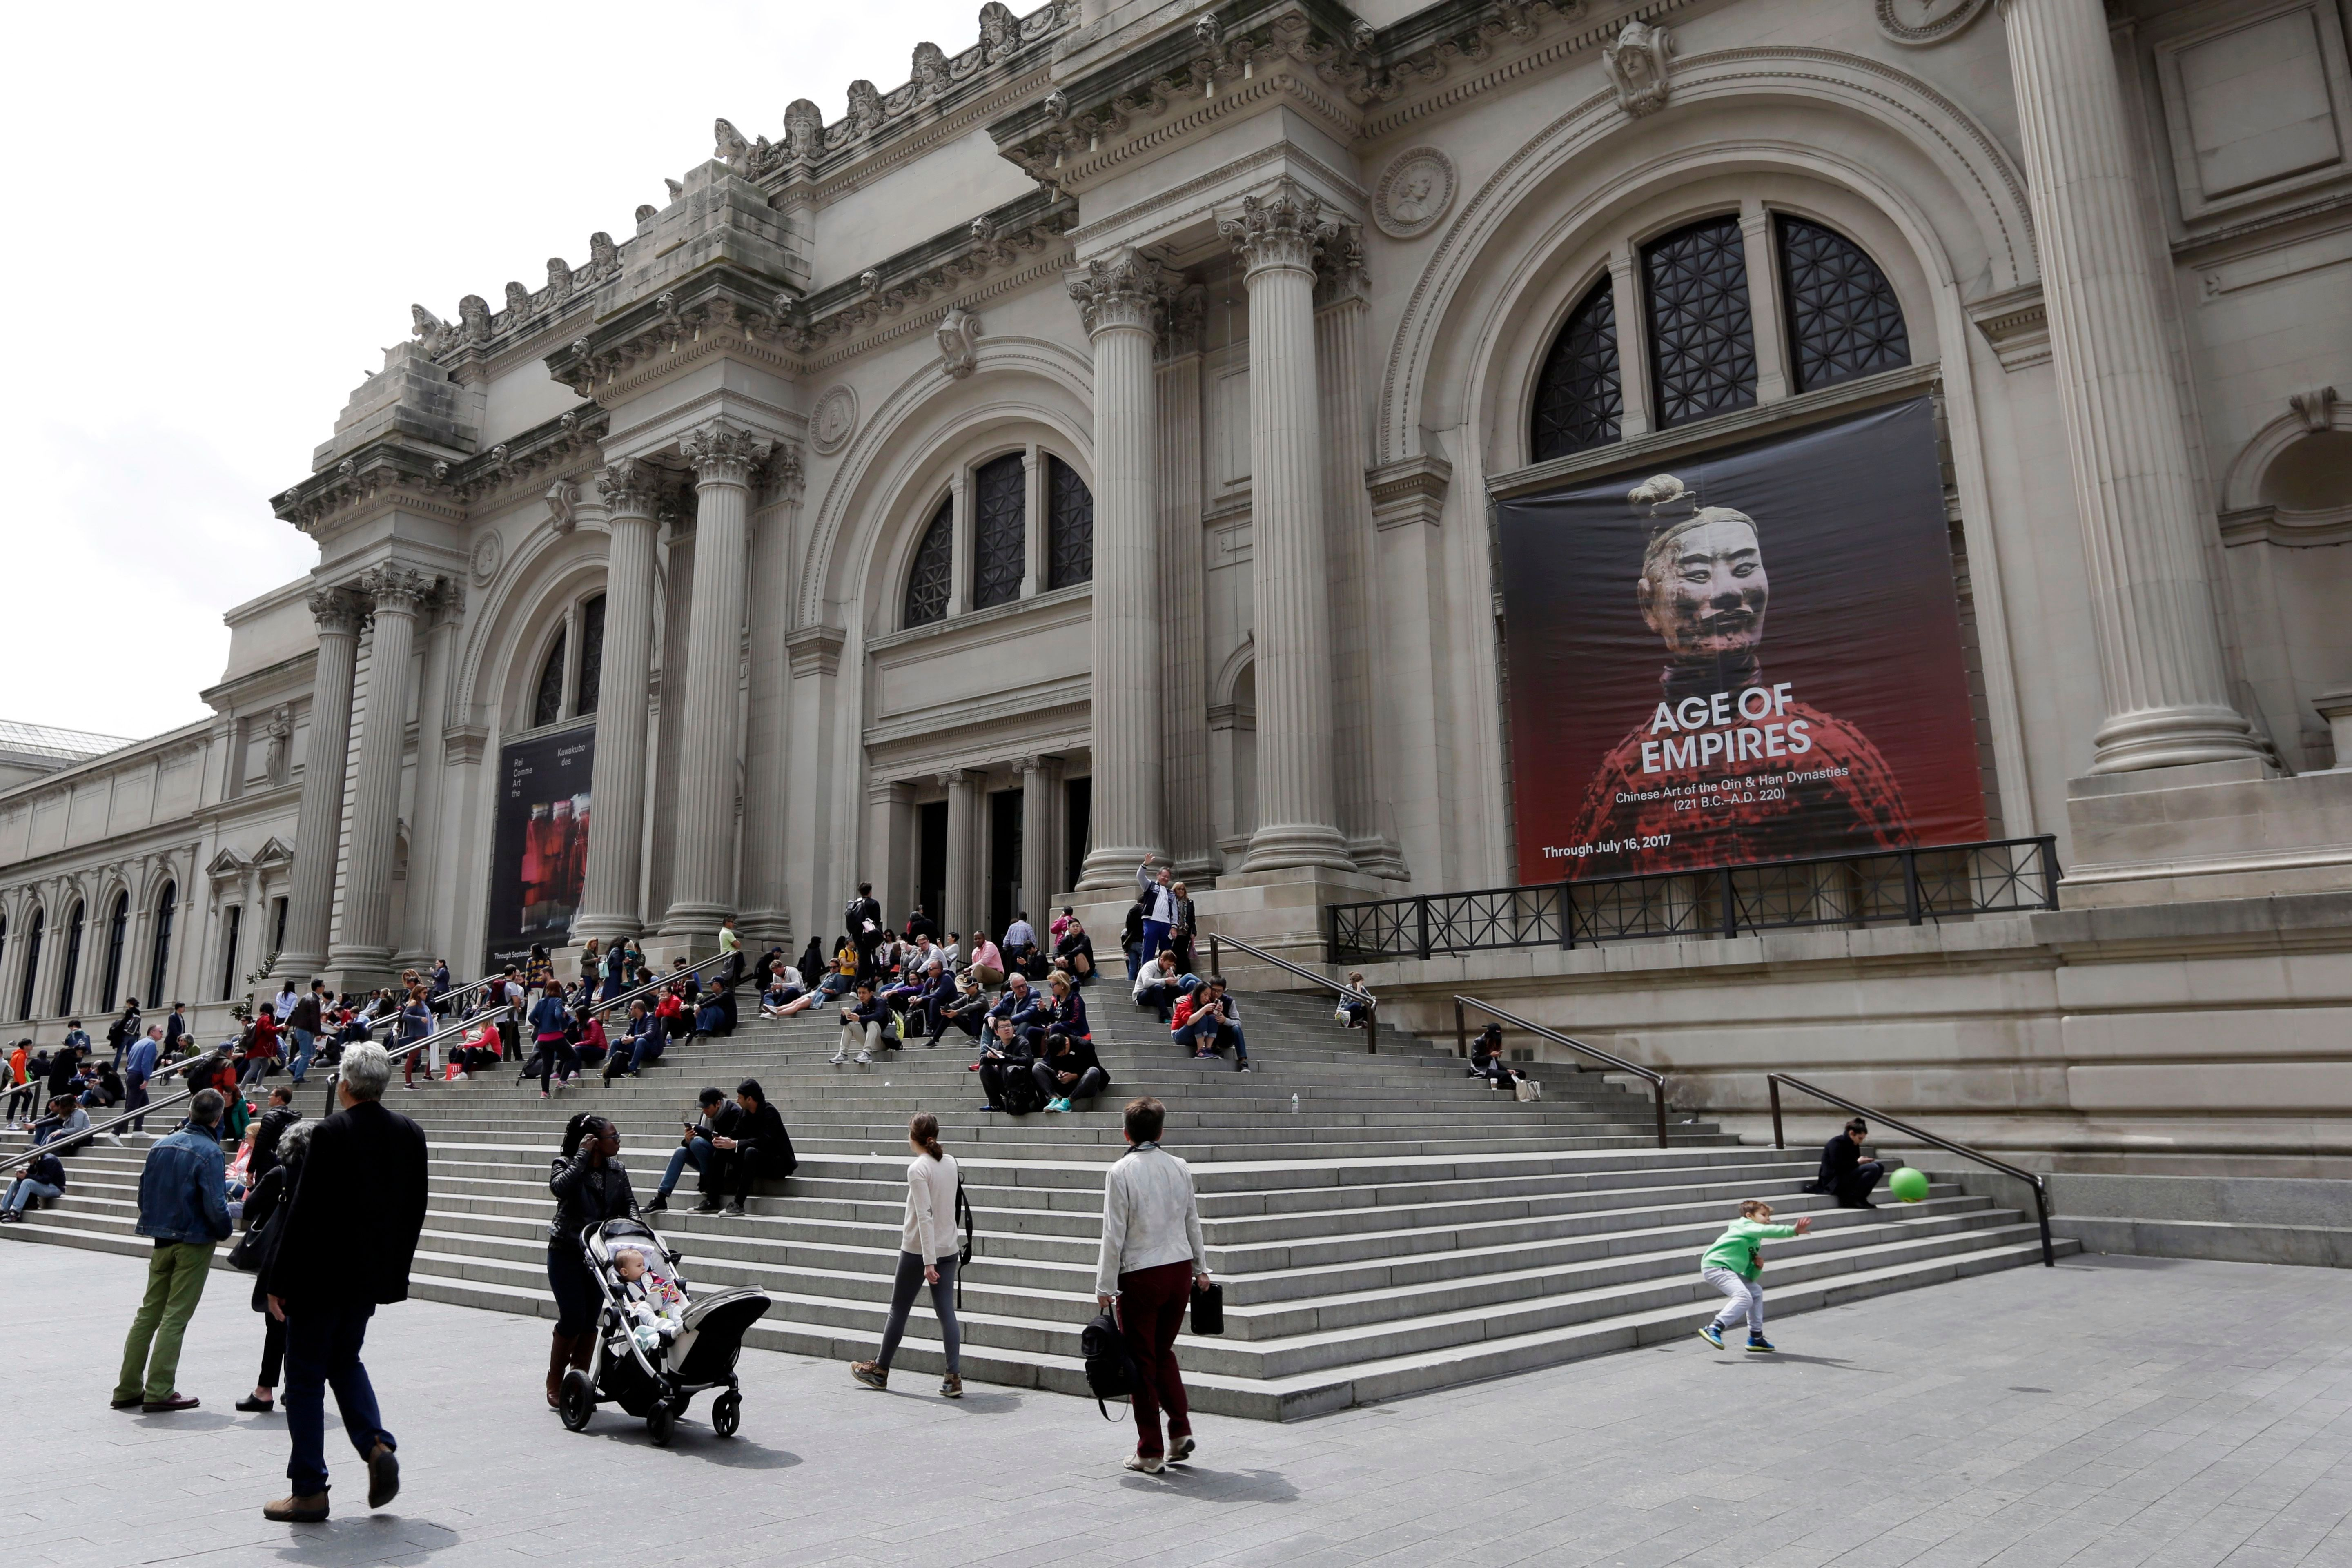 The Met Reviews Possibly Looted Indian Artifacts, Lynda Benglis Discusses Her Practice, and More: Morning Links for August 19, 2019